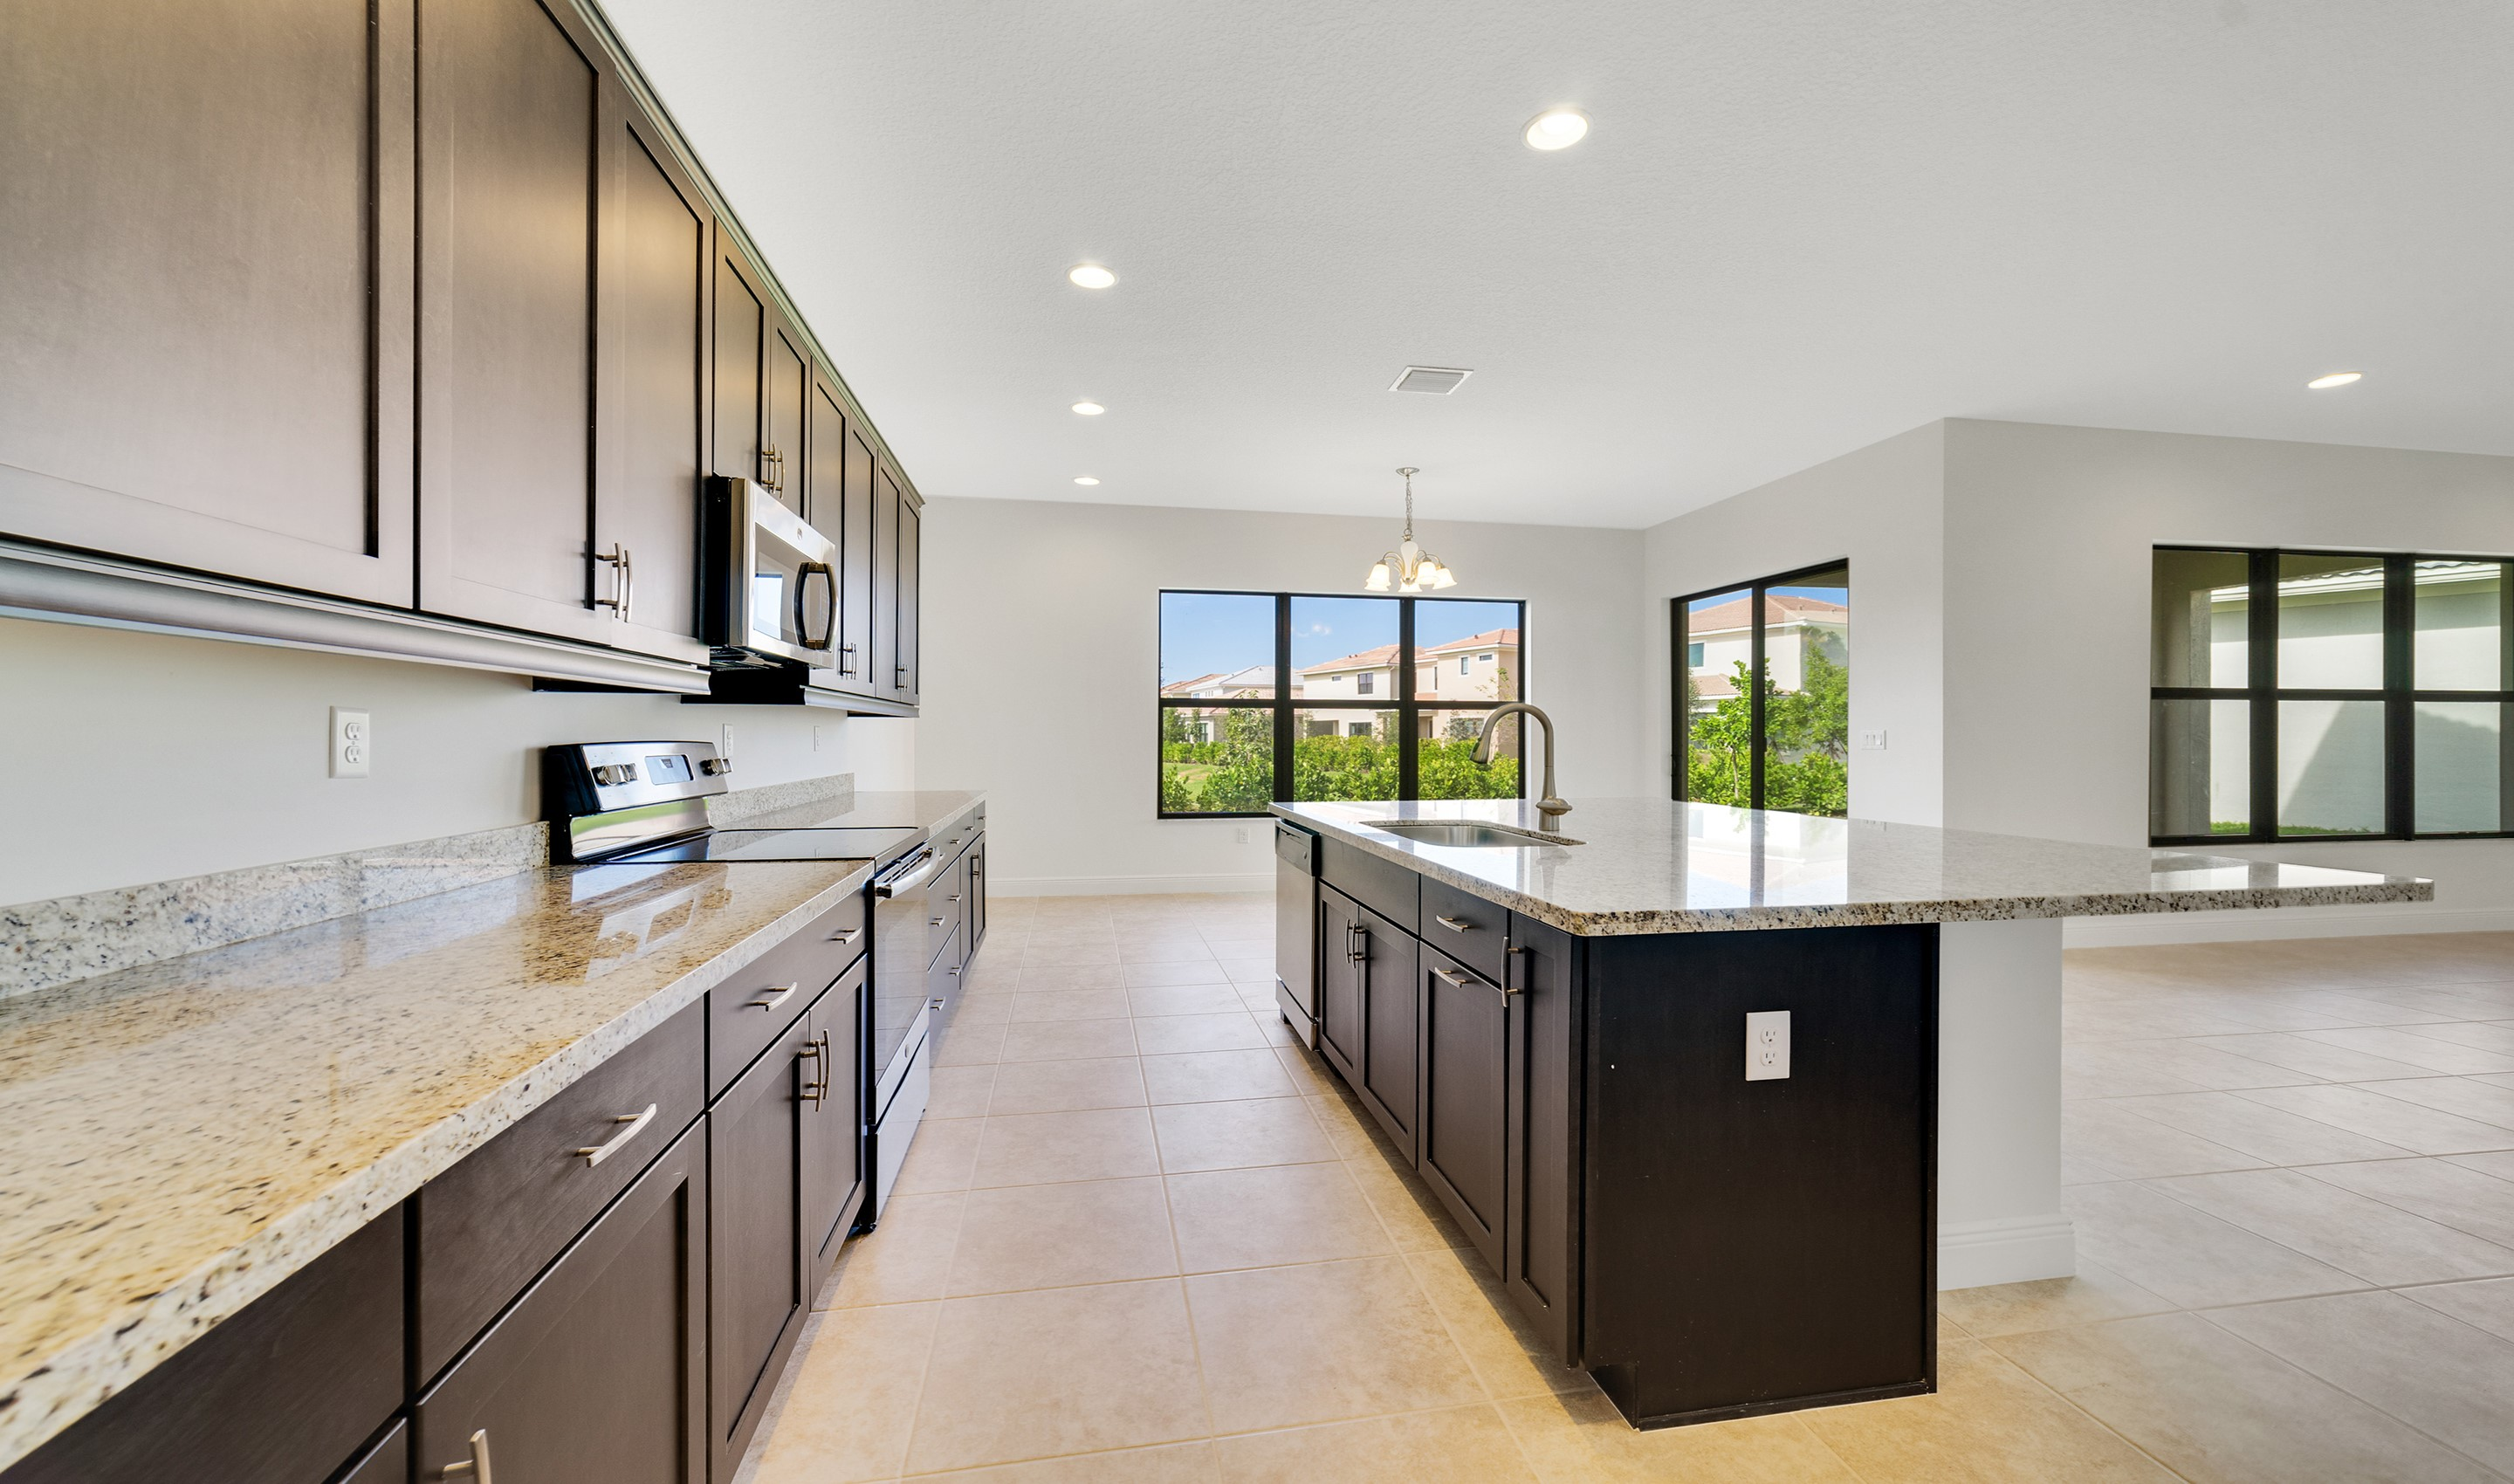 Sizable kitchen counters & cabinets